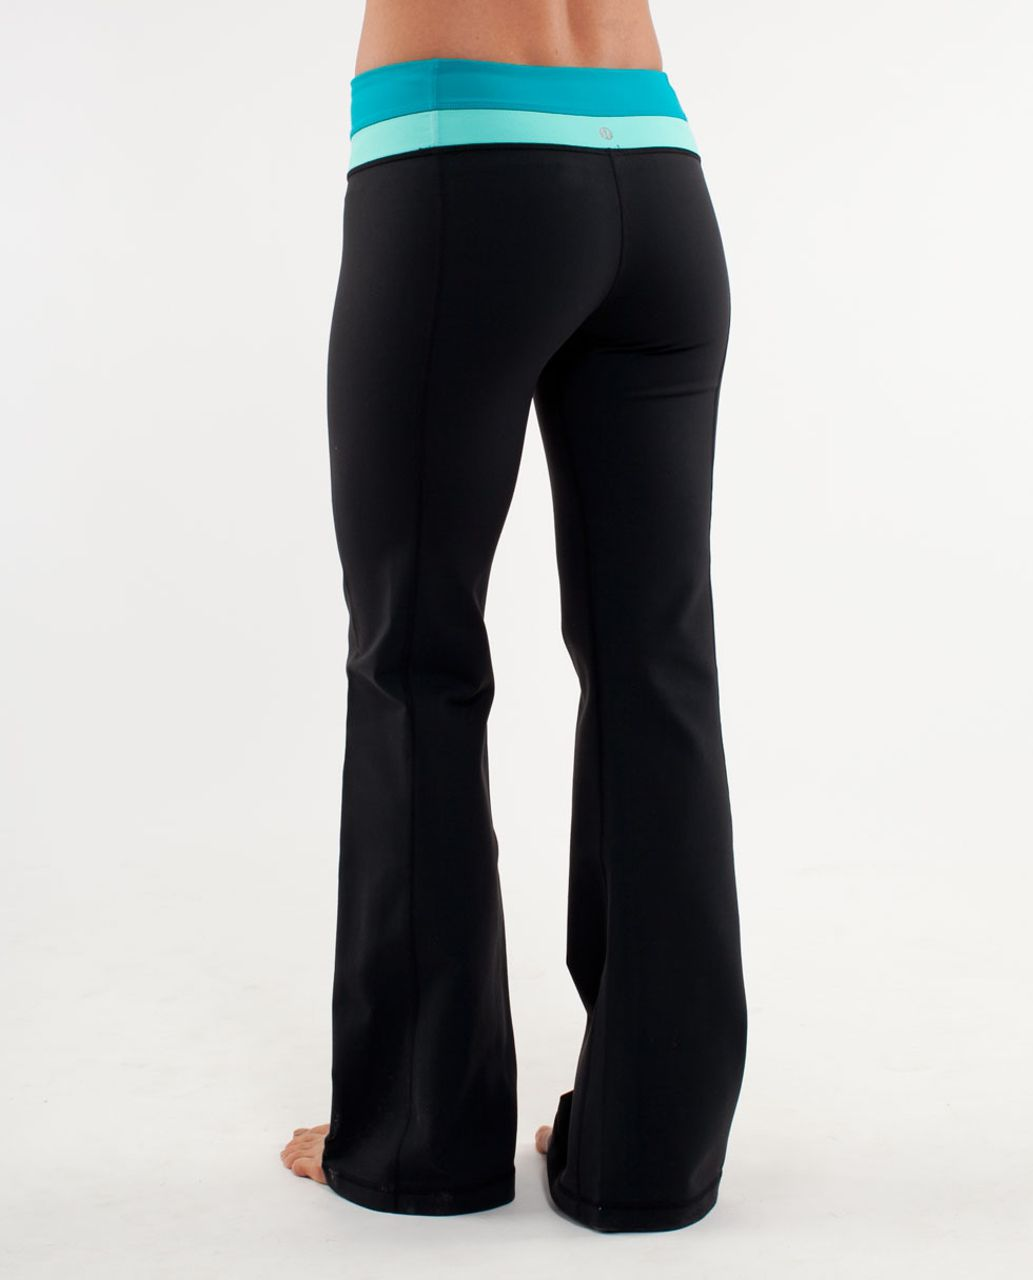 Lululemon Groove Pant (Tall) - Black /  Oasis /  River Rock